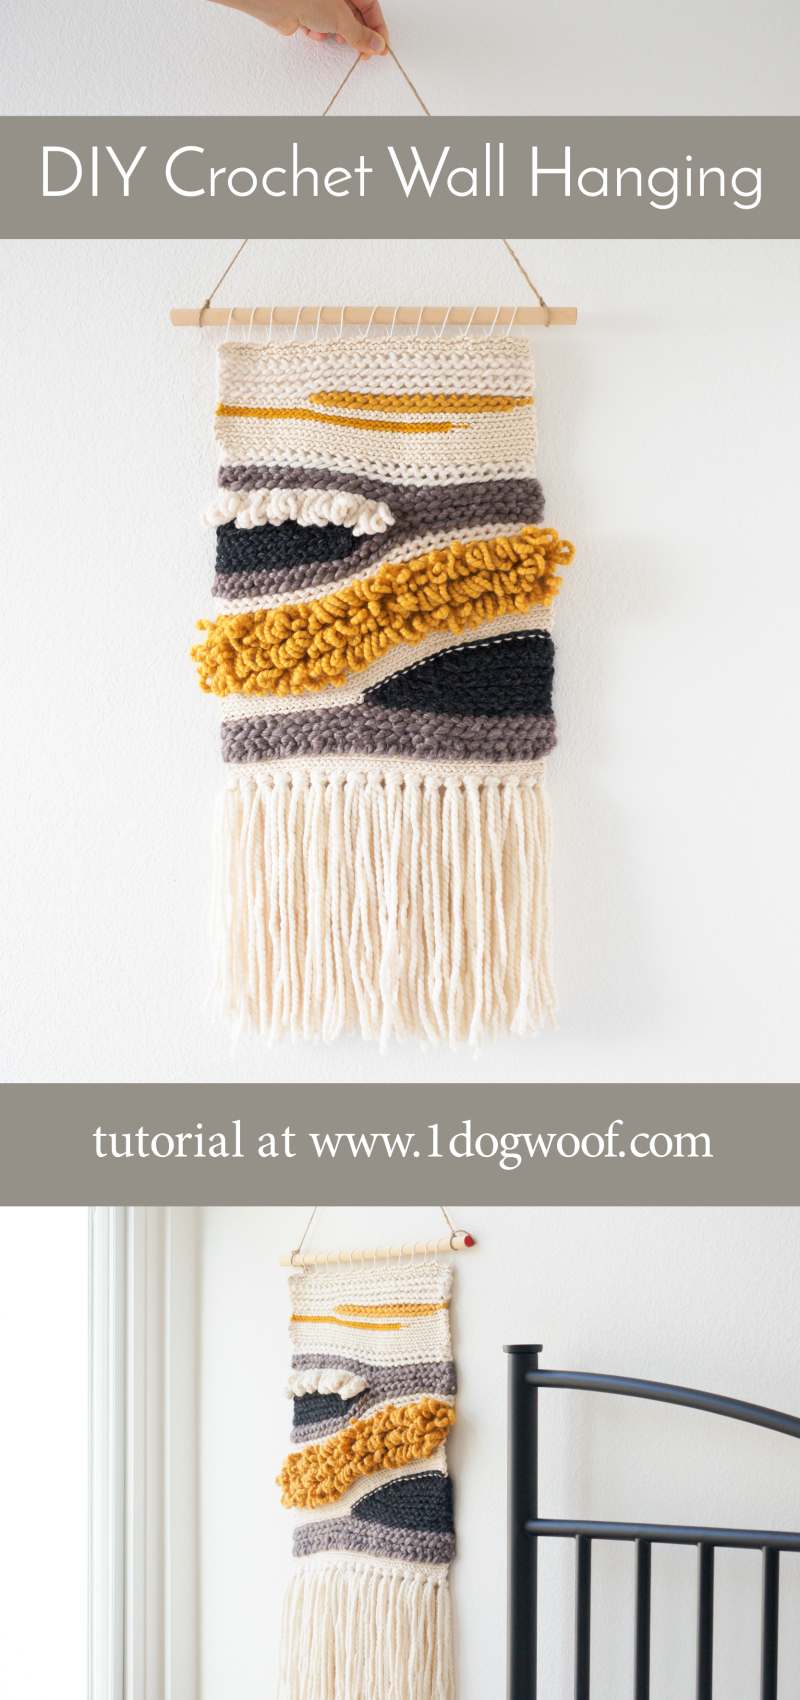 Make your own crochet wall hanging as a fun creative project! Also great for using up those leftover bits of yarn! | www.1dogwoof.com